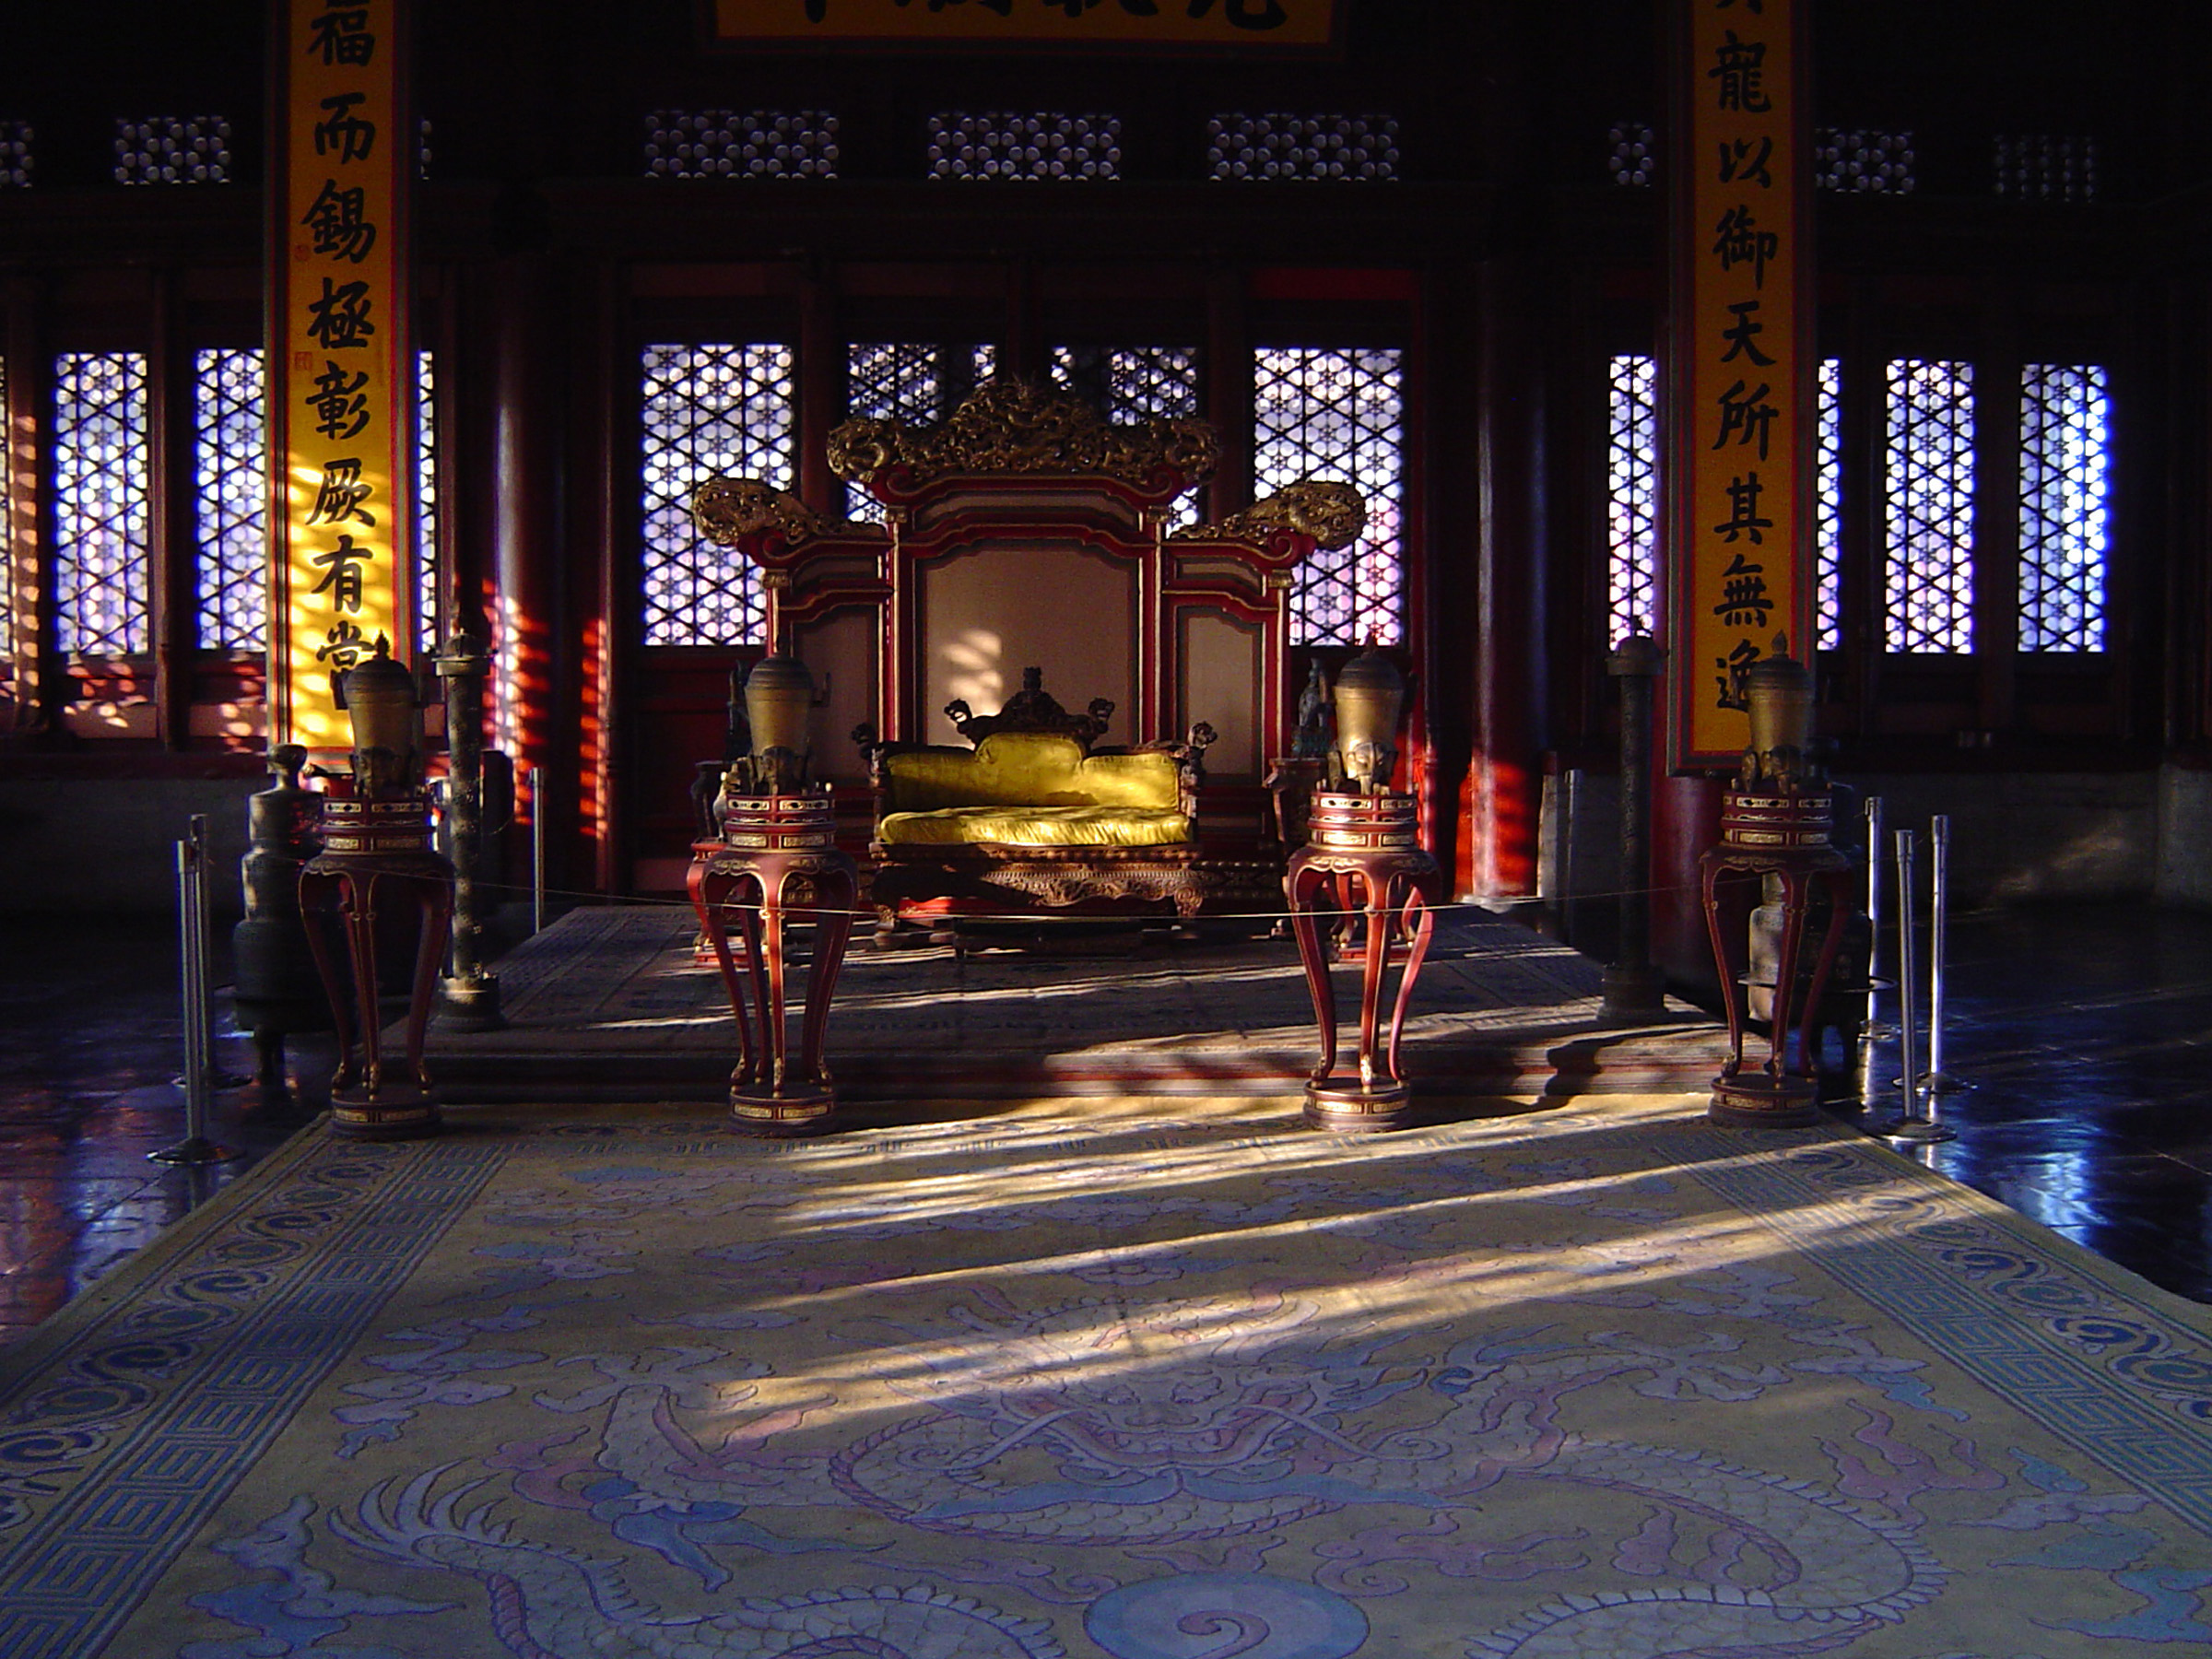 Artistic Elegant Interior Design of Forbidden City Palace in Beijing China